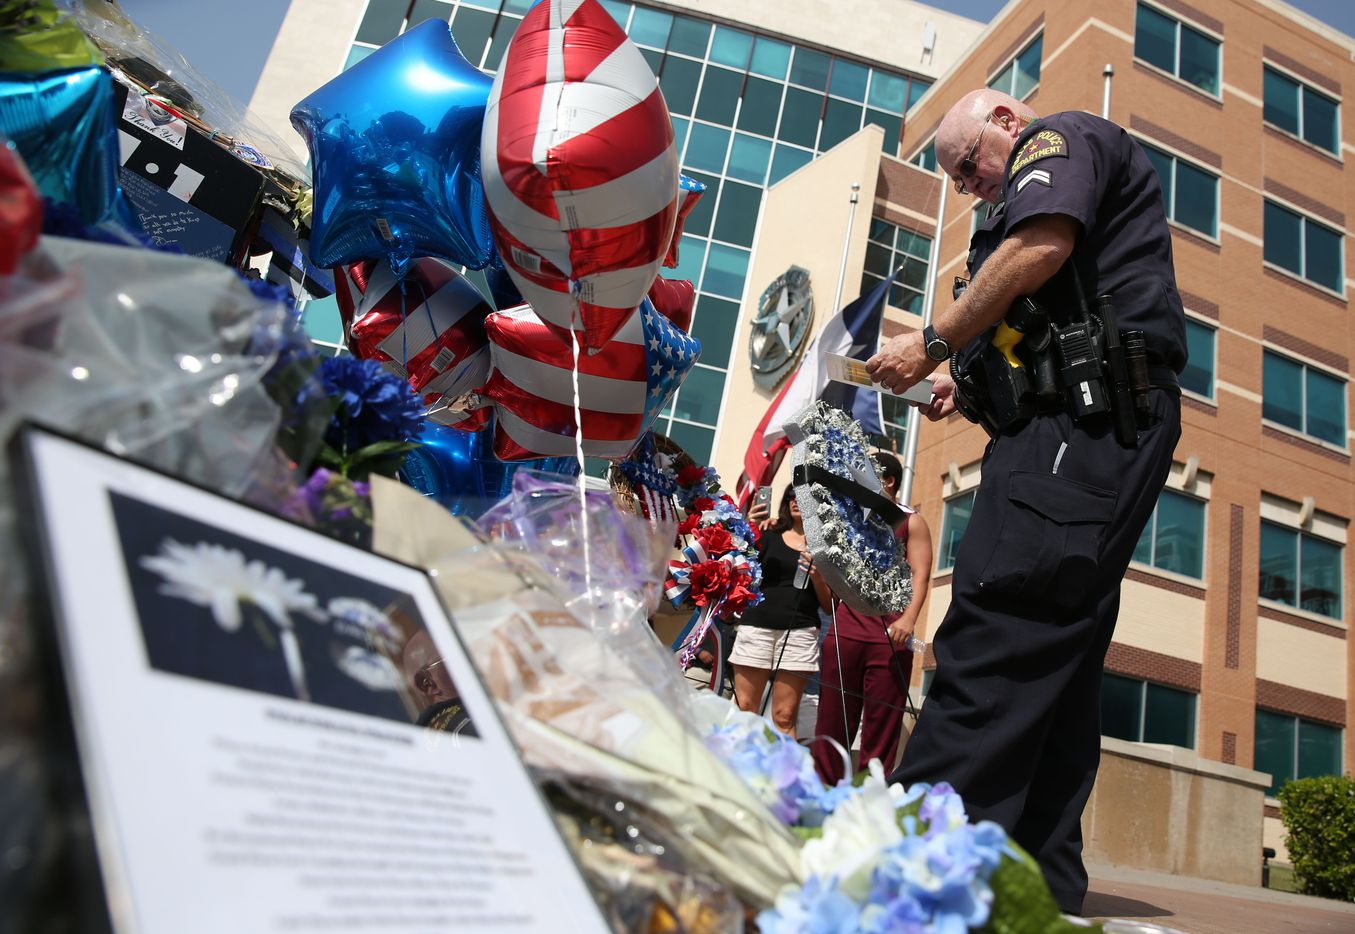 Dallas police officer Jon Lumbley reads a card that was left  at the memorial for fallen officers at Dallas Police headquarters in Dallas on Saturday, July 16, 2016.